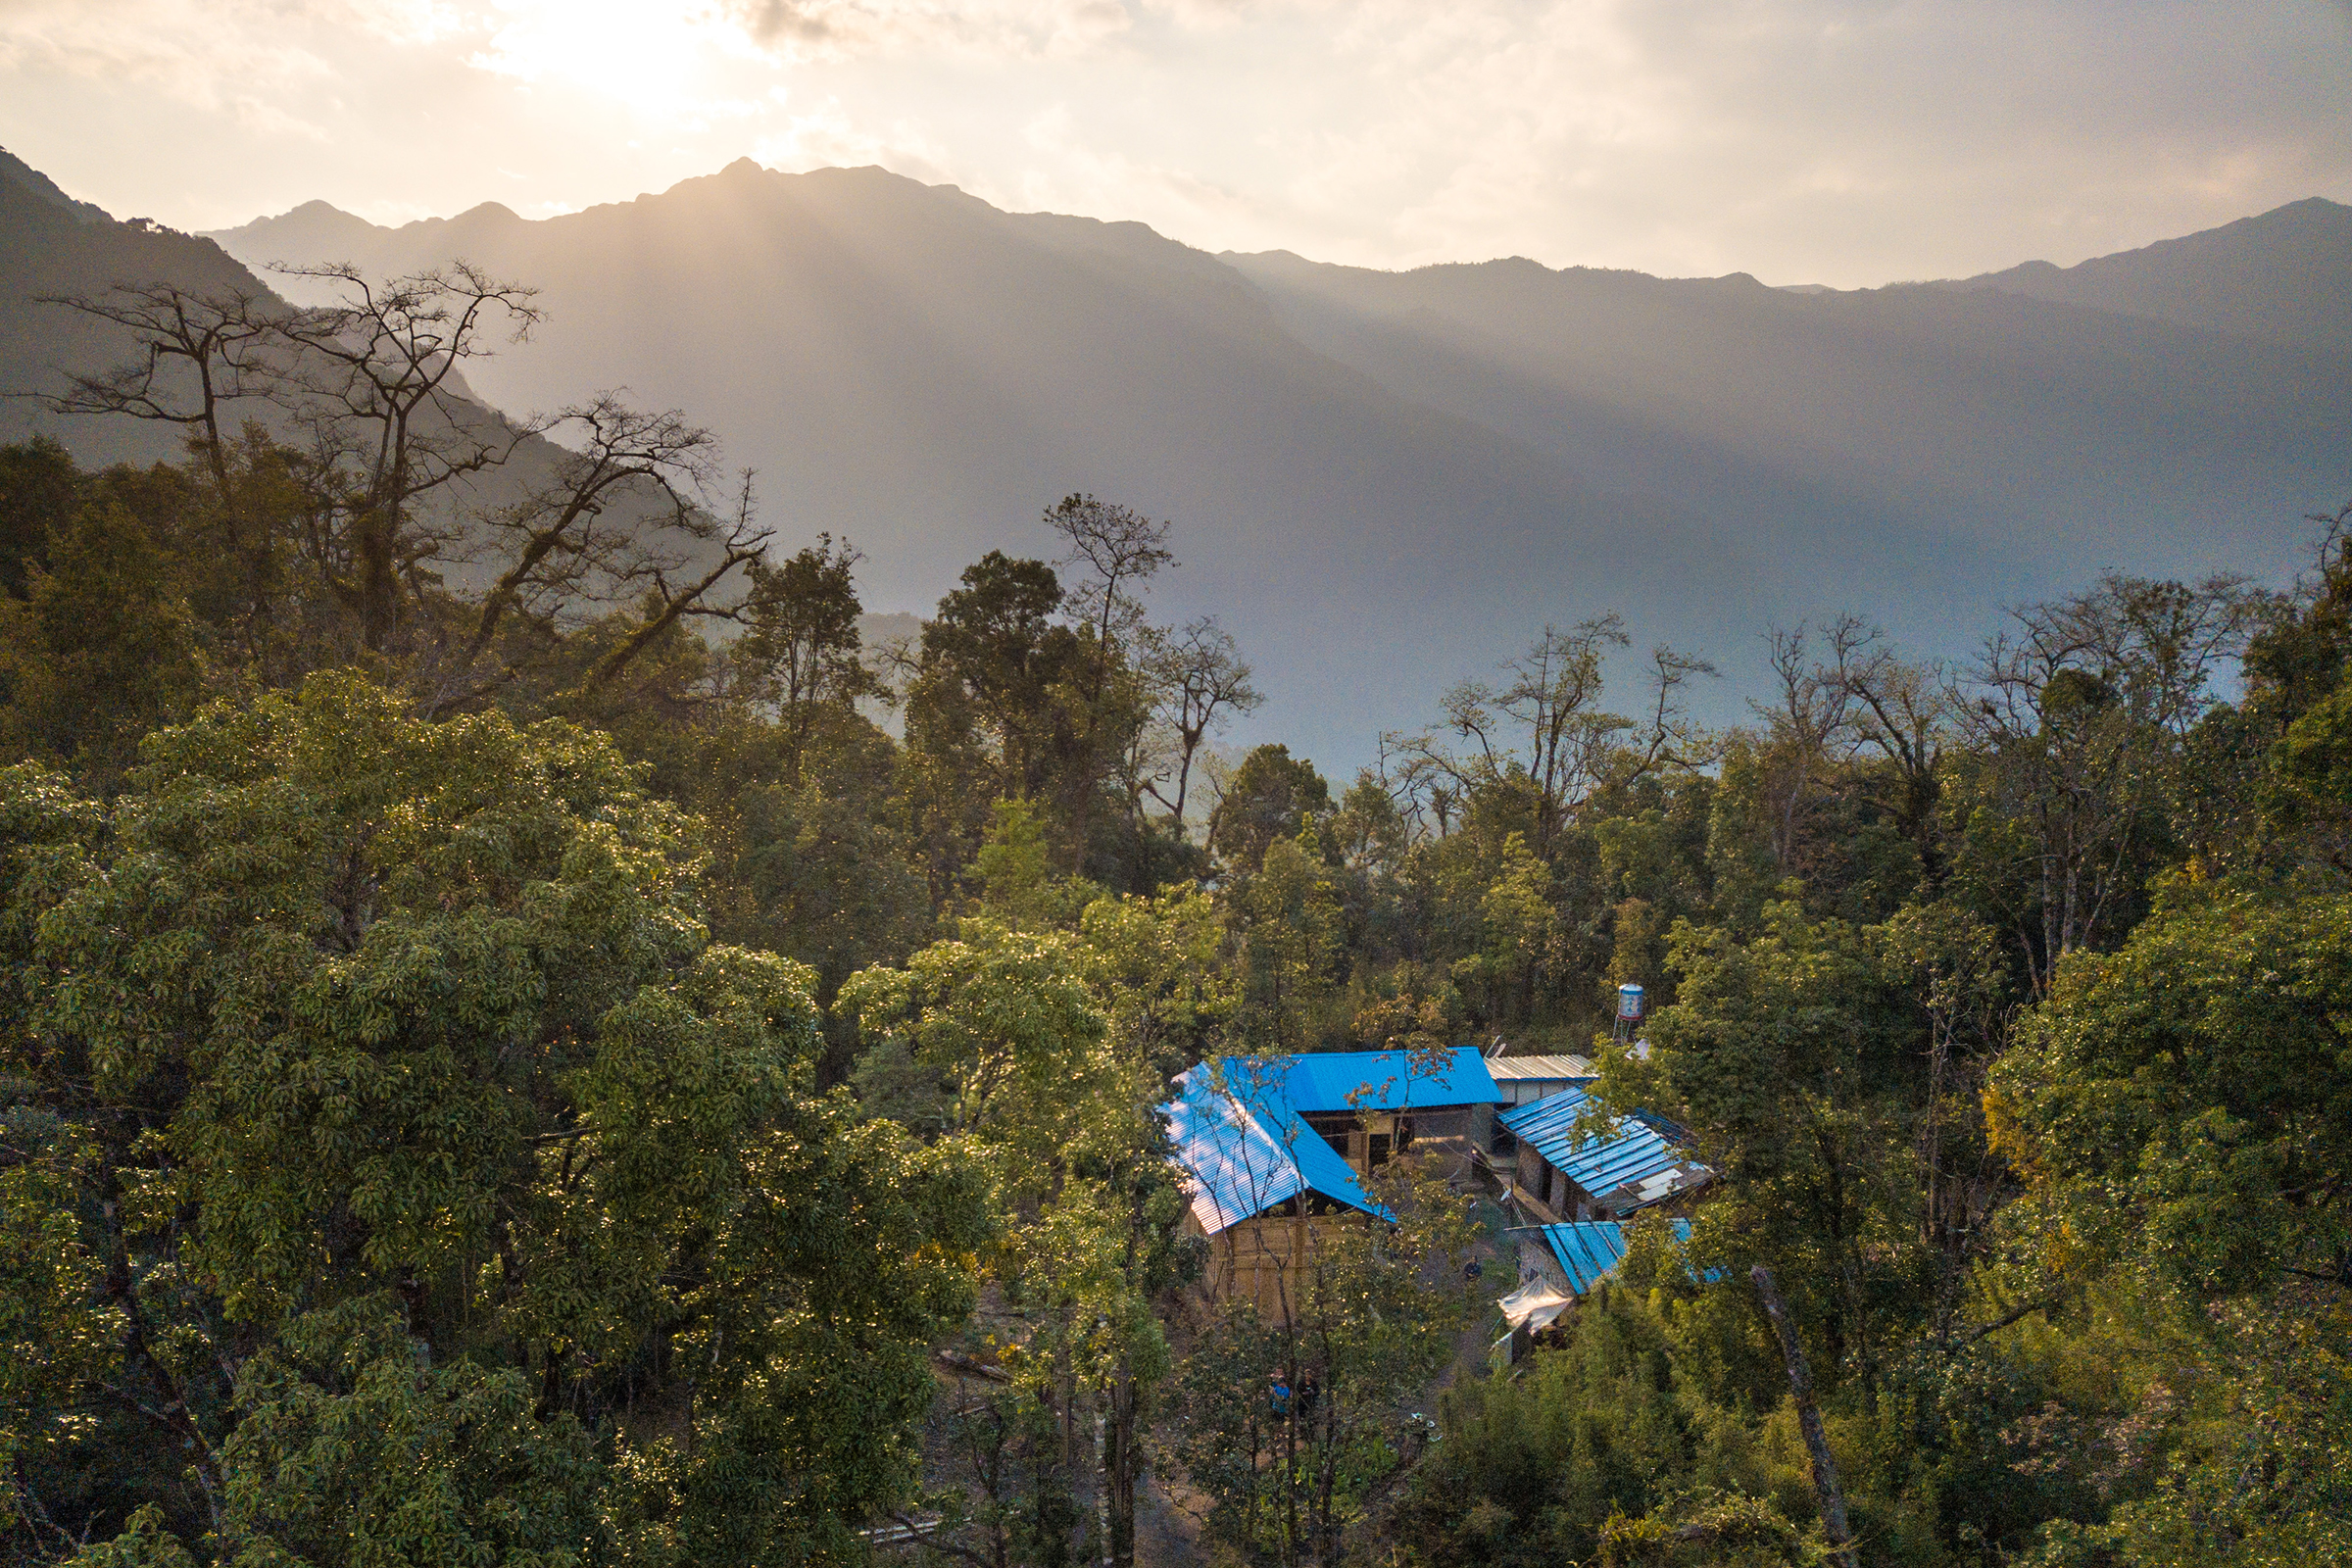 When working in the National Nature Reserve, rangers stay at the Banchang research station, which sits at around 1,800 meters on one of the ridges of the Gaoligong Mountains.